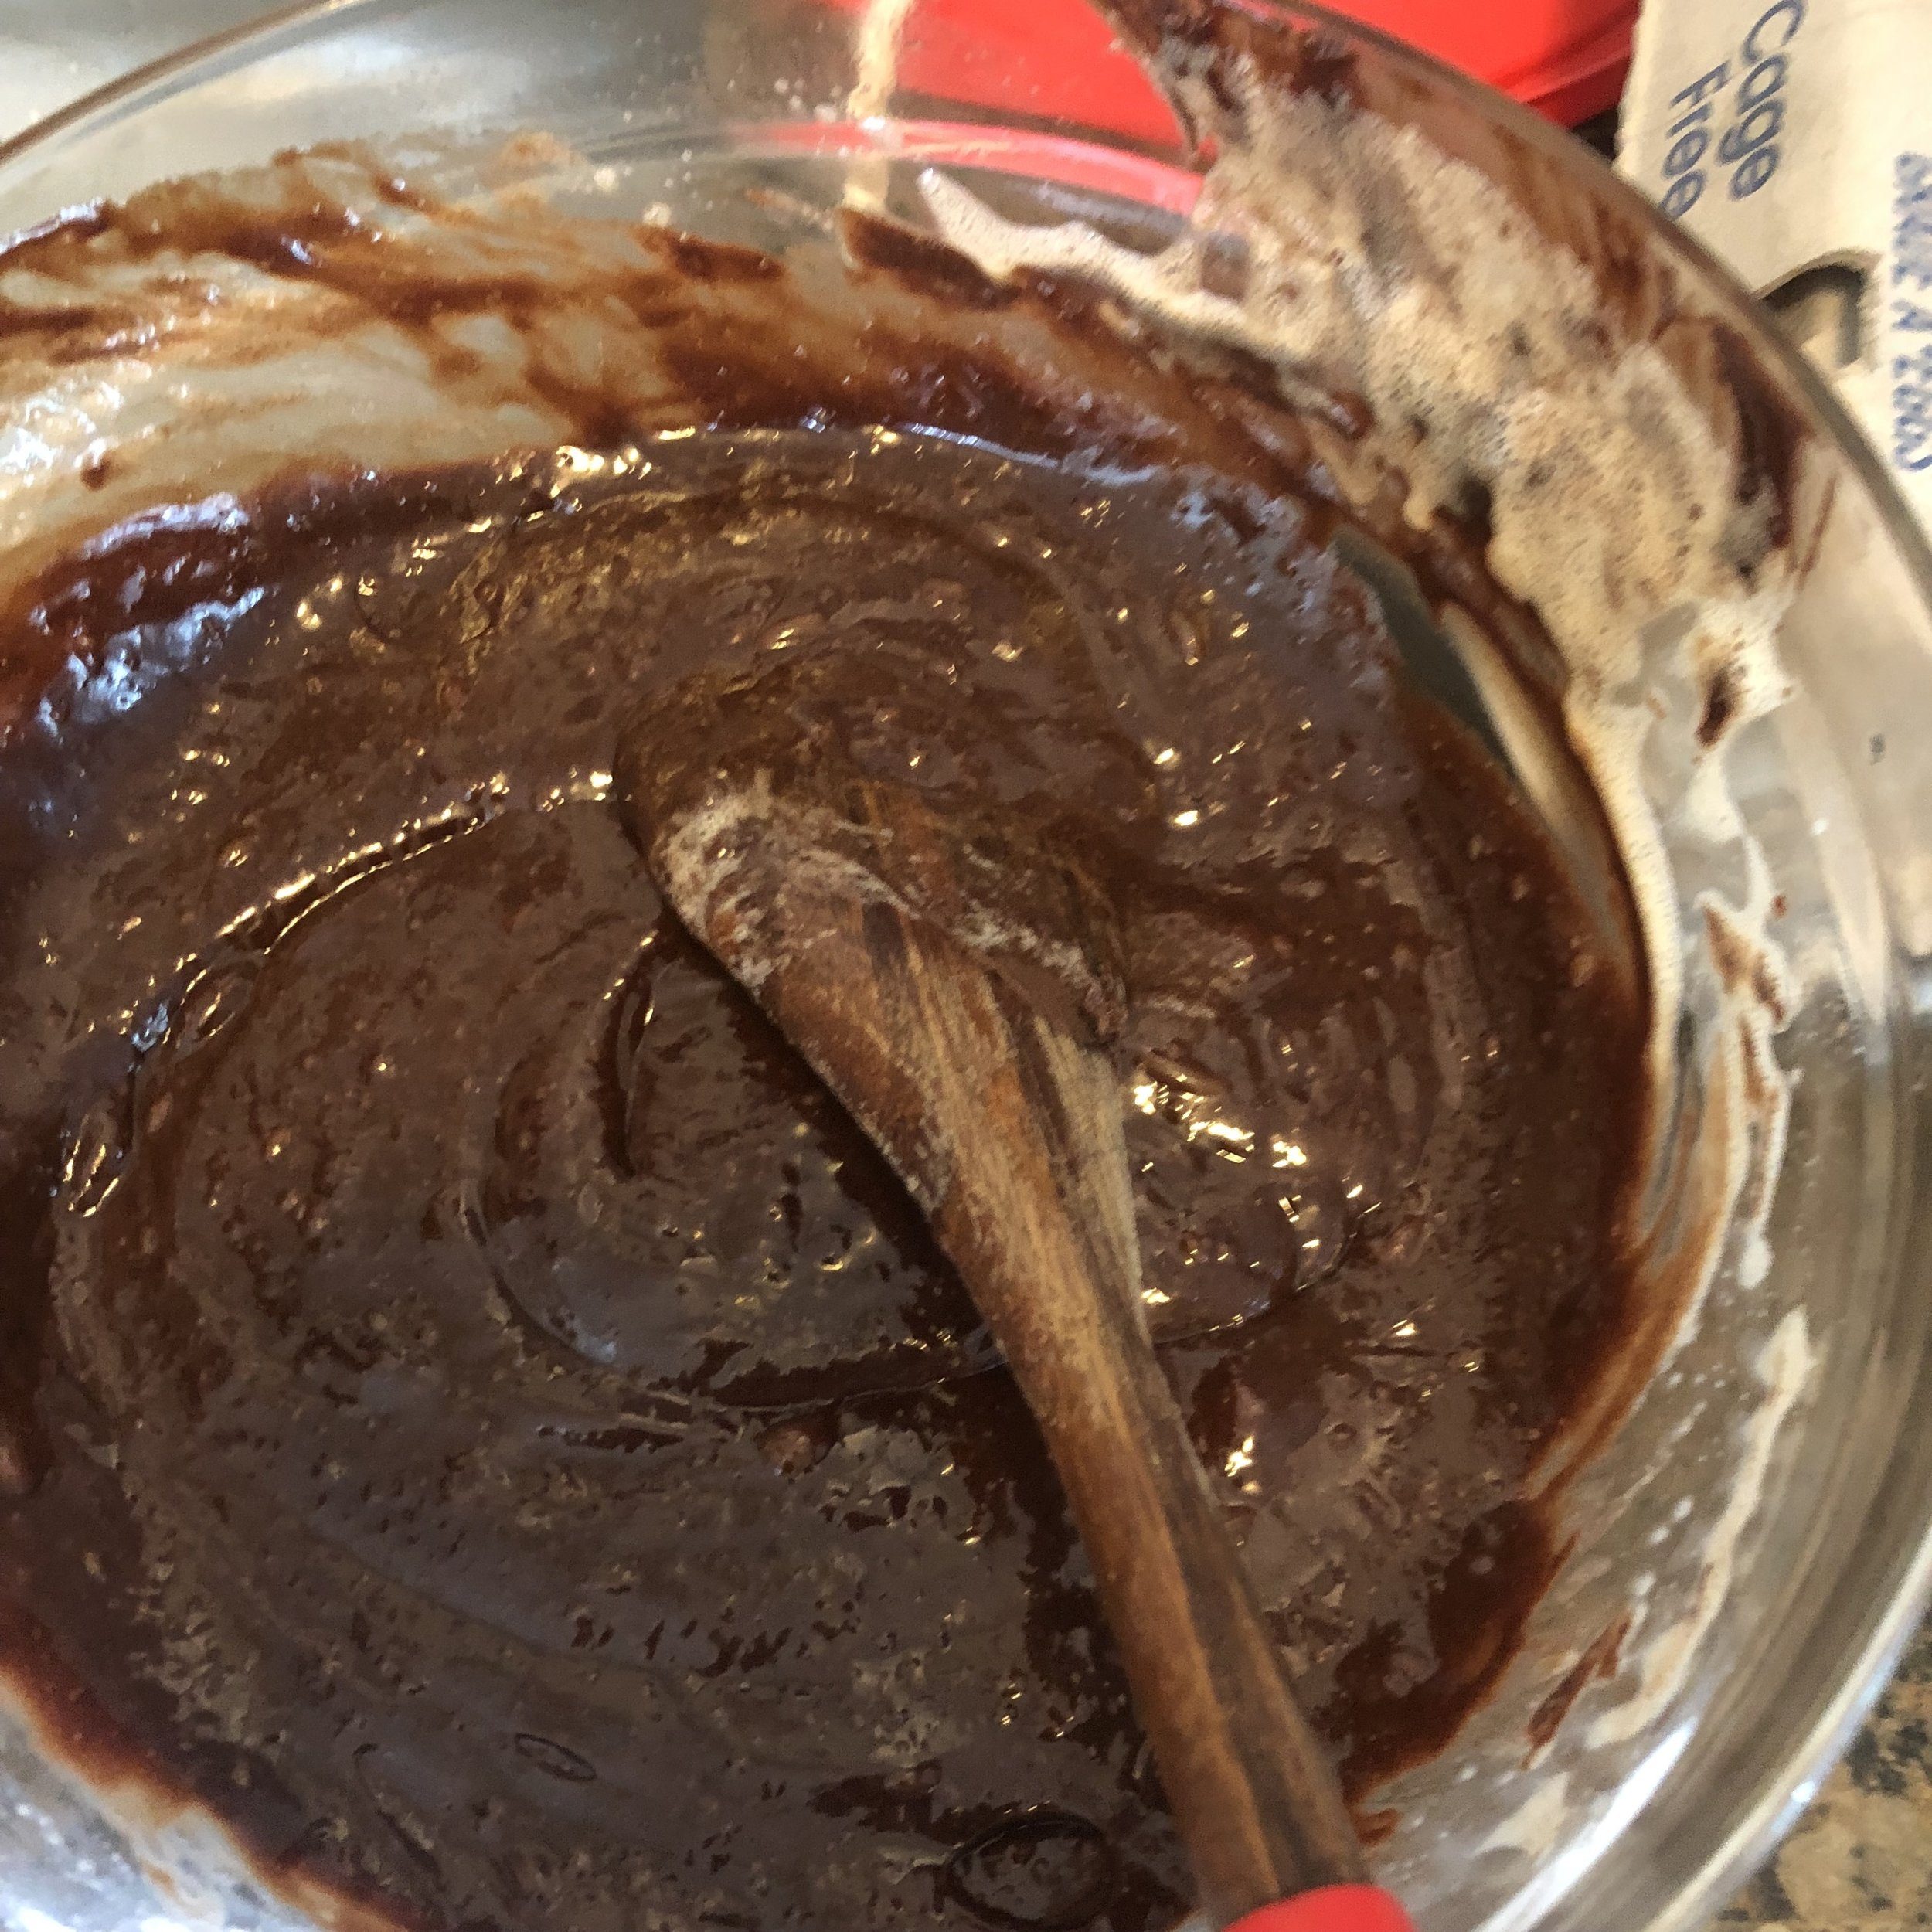 The mixture should resemble a very smooth cake batter when completely integrated. Pour the batter into a foil lined springform pan and place the pan on a baking sheet. Place in the oven for 36 -41 minutes.